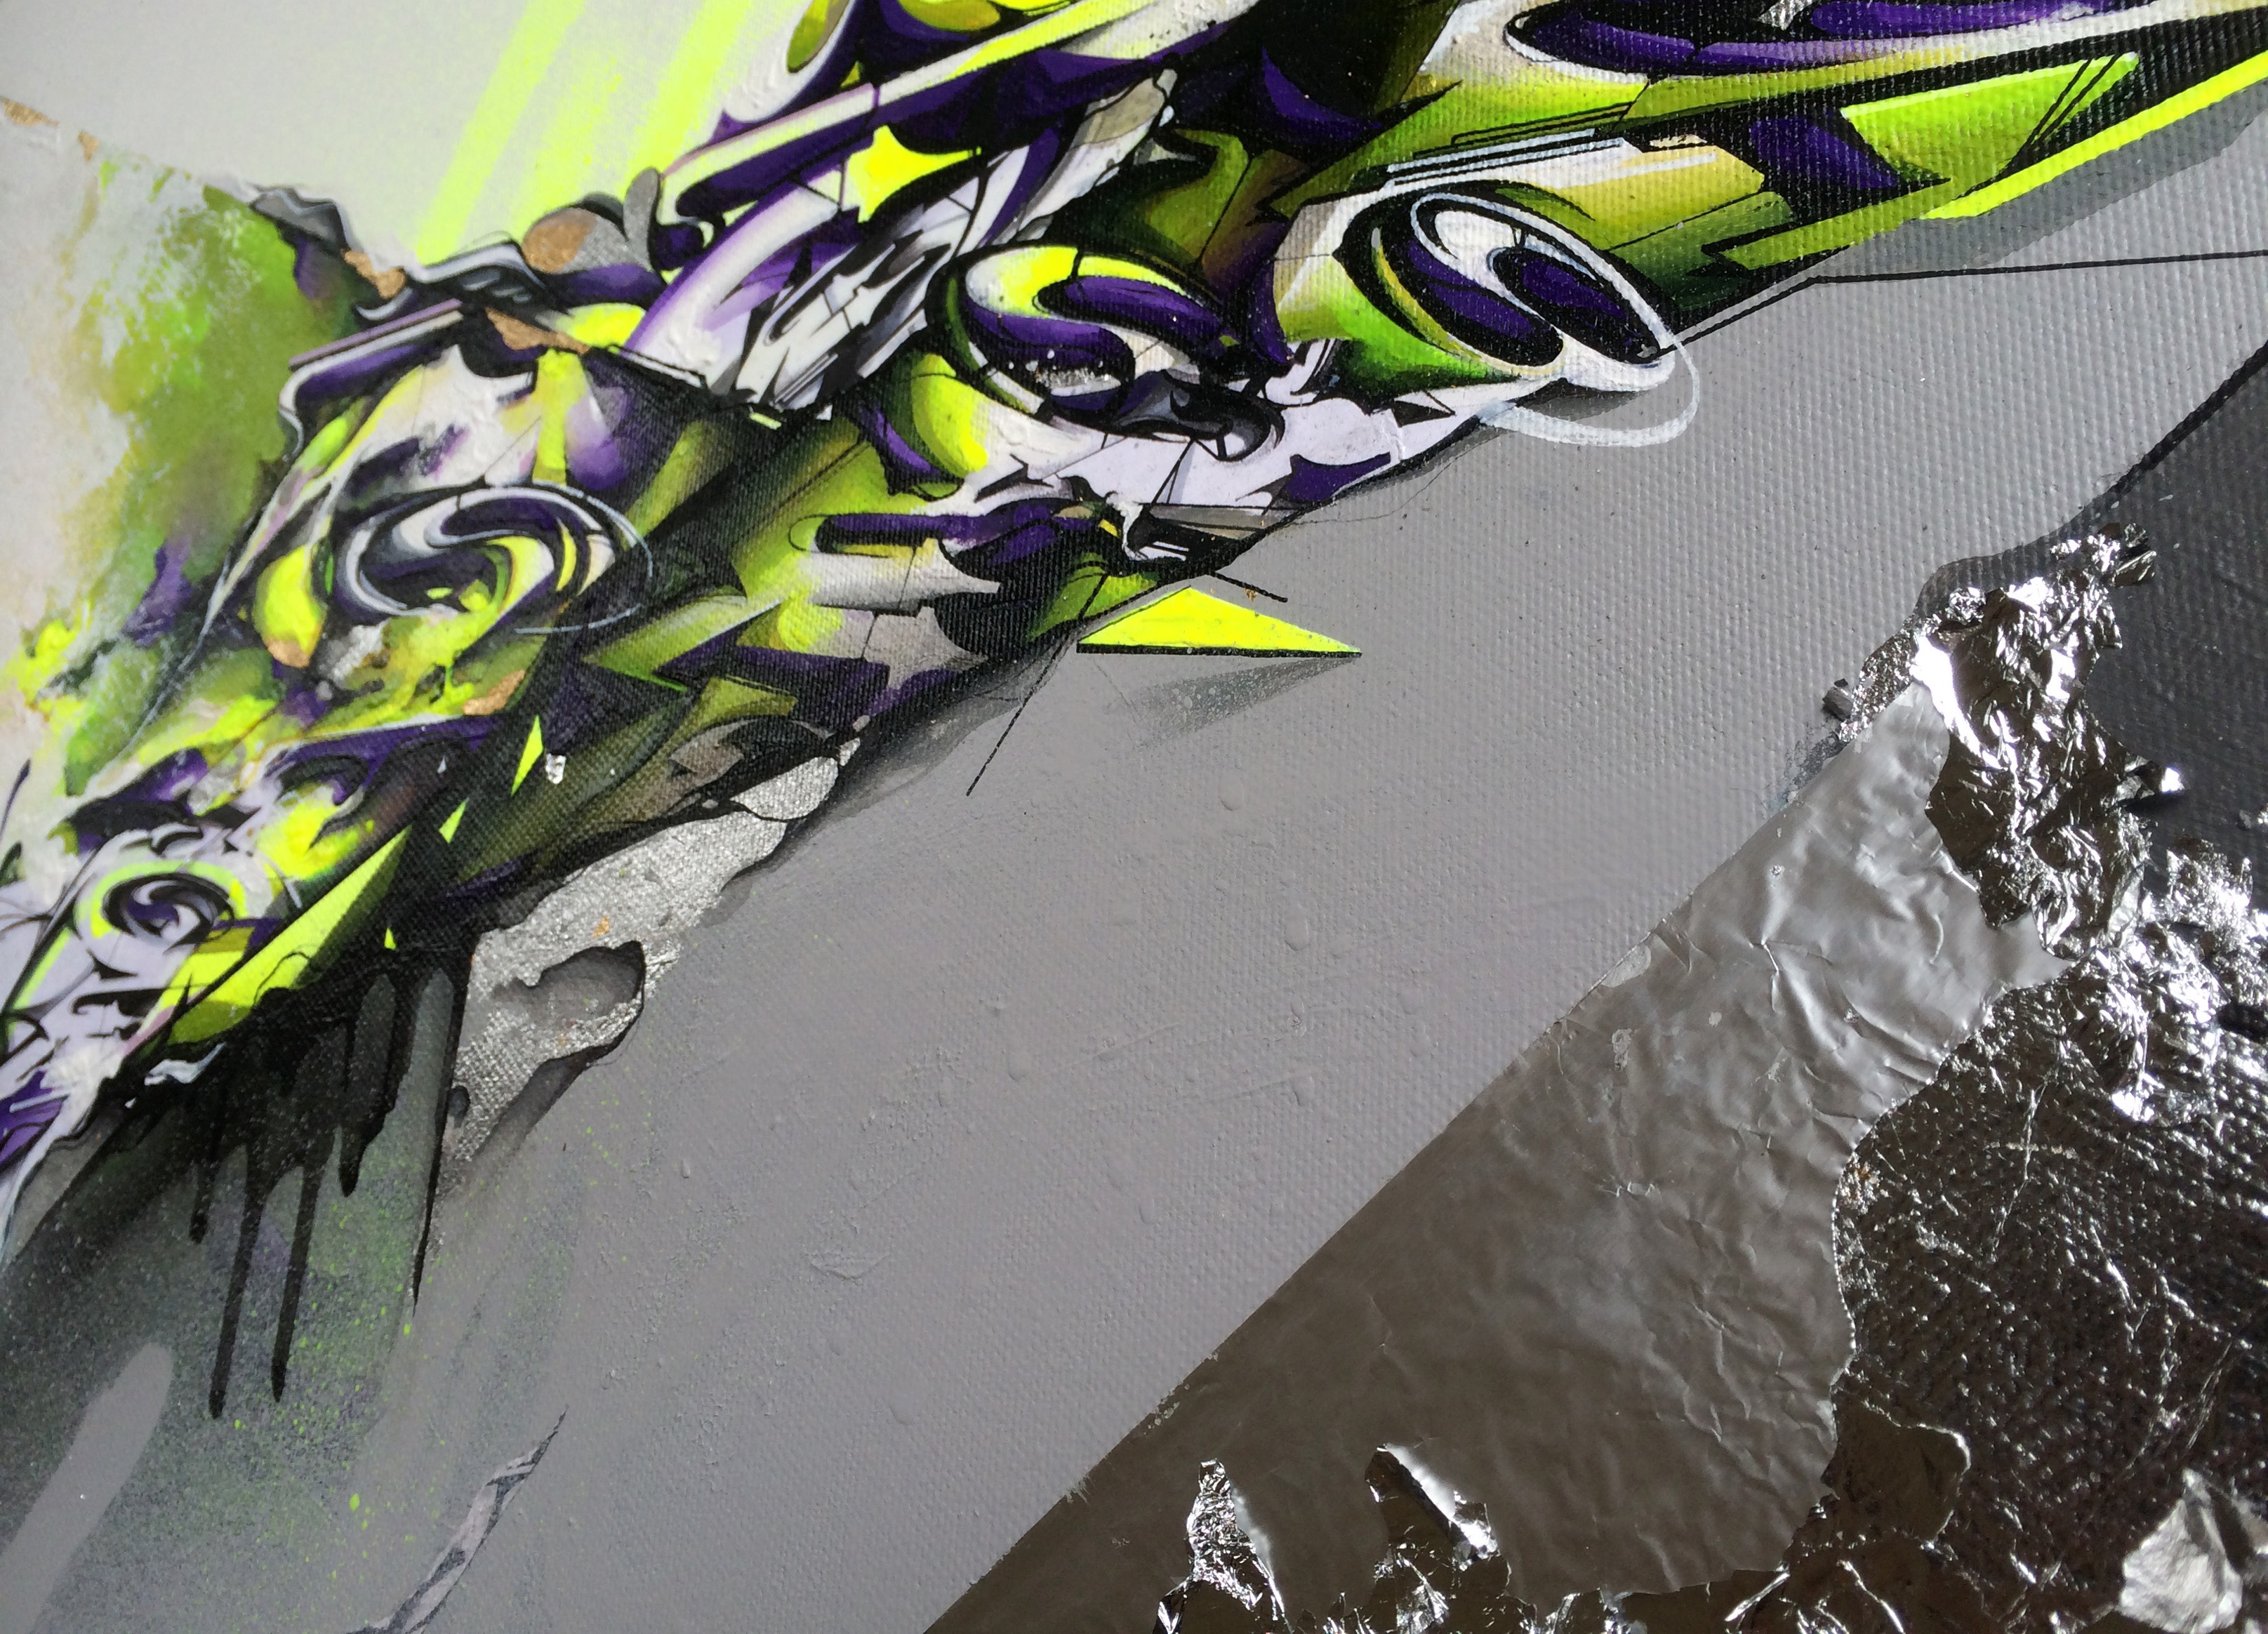 A work by Does - Forcefield canvas detail 3